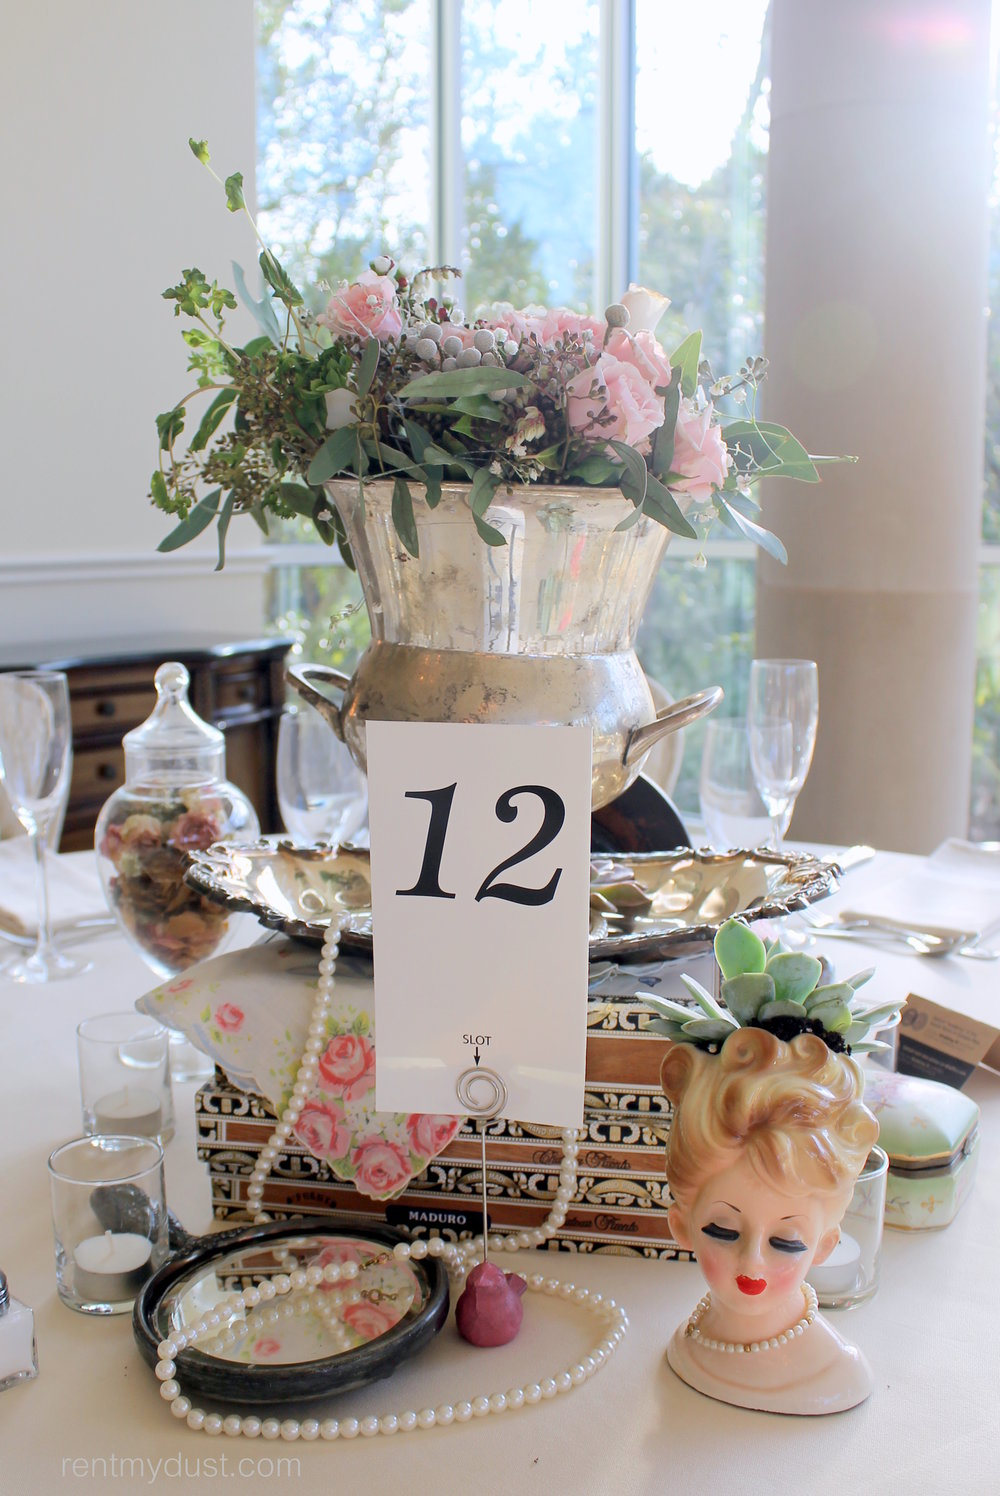 rent my dust_tablescape12.jpg